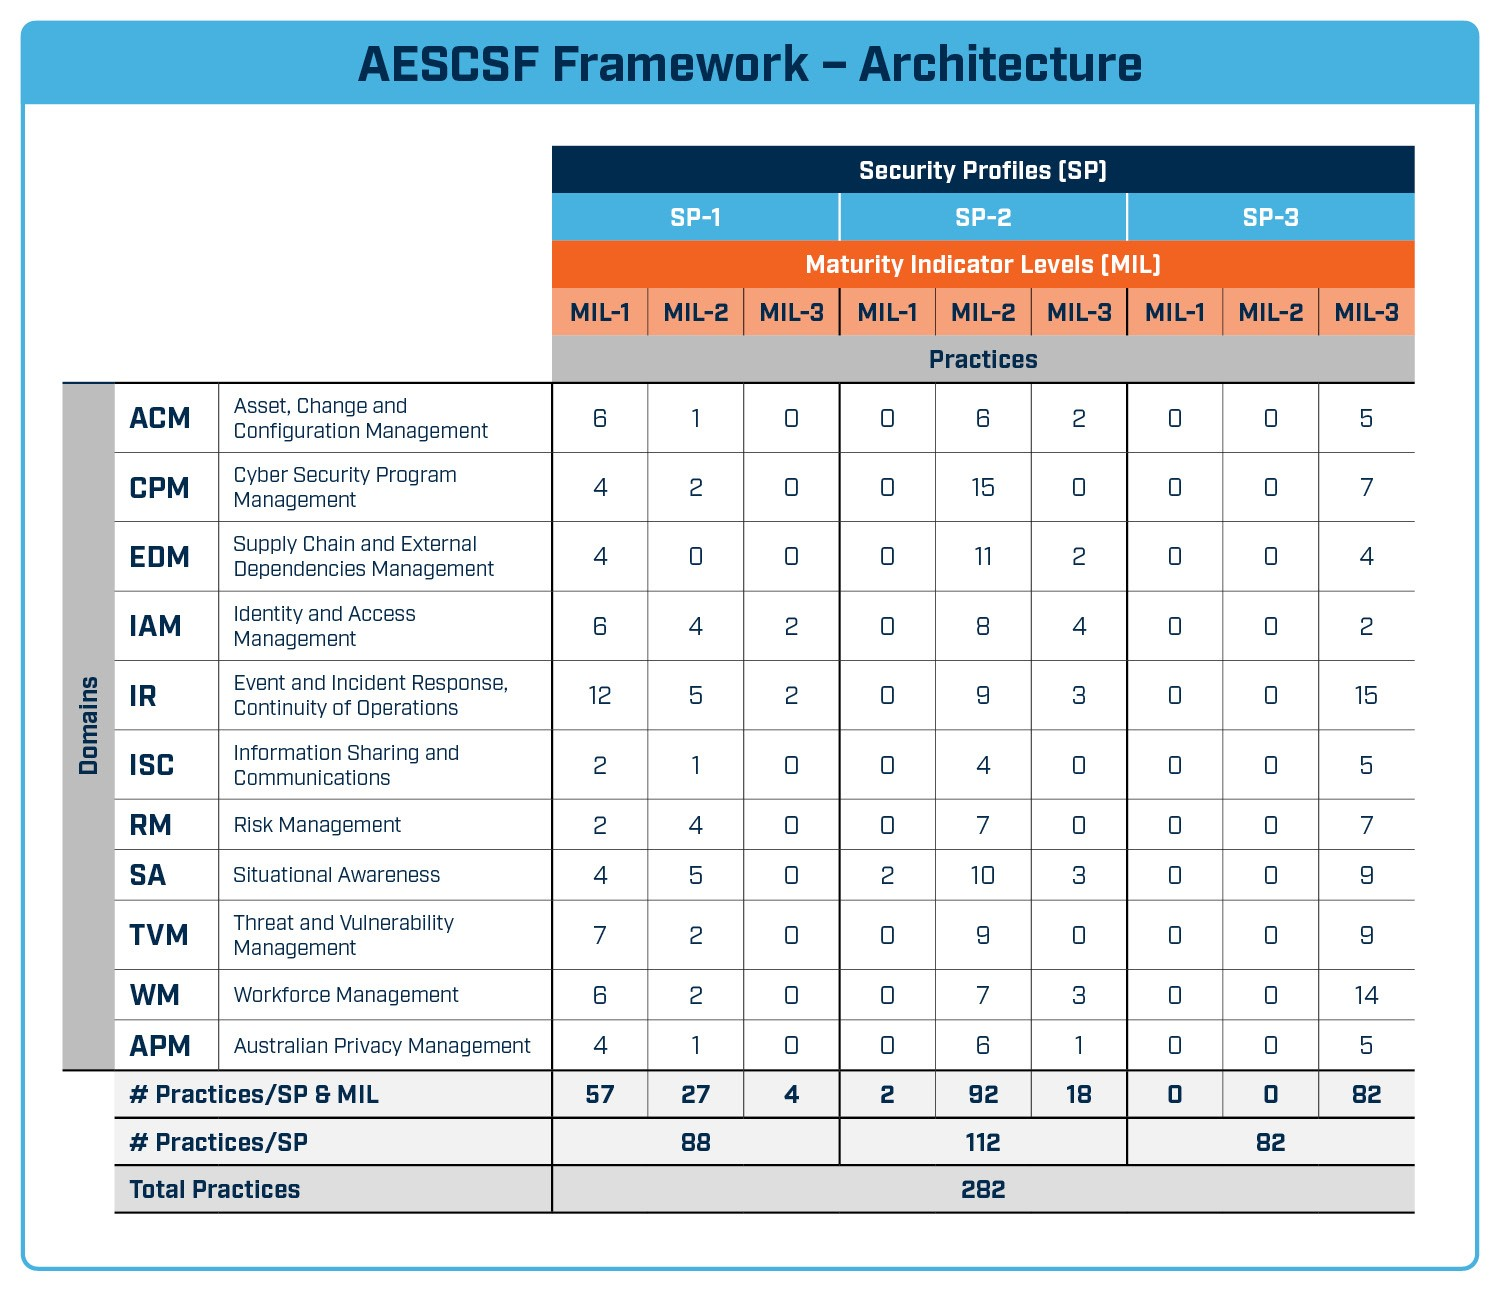 A diagram showing the Australian Energy Sector Cyber Security Framework's architecture